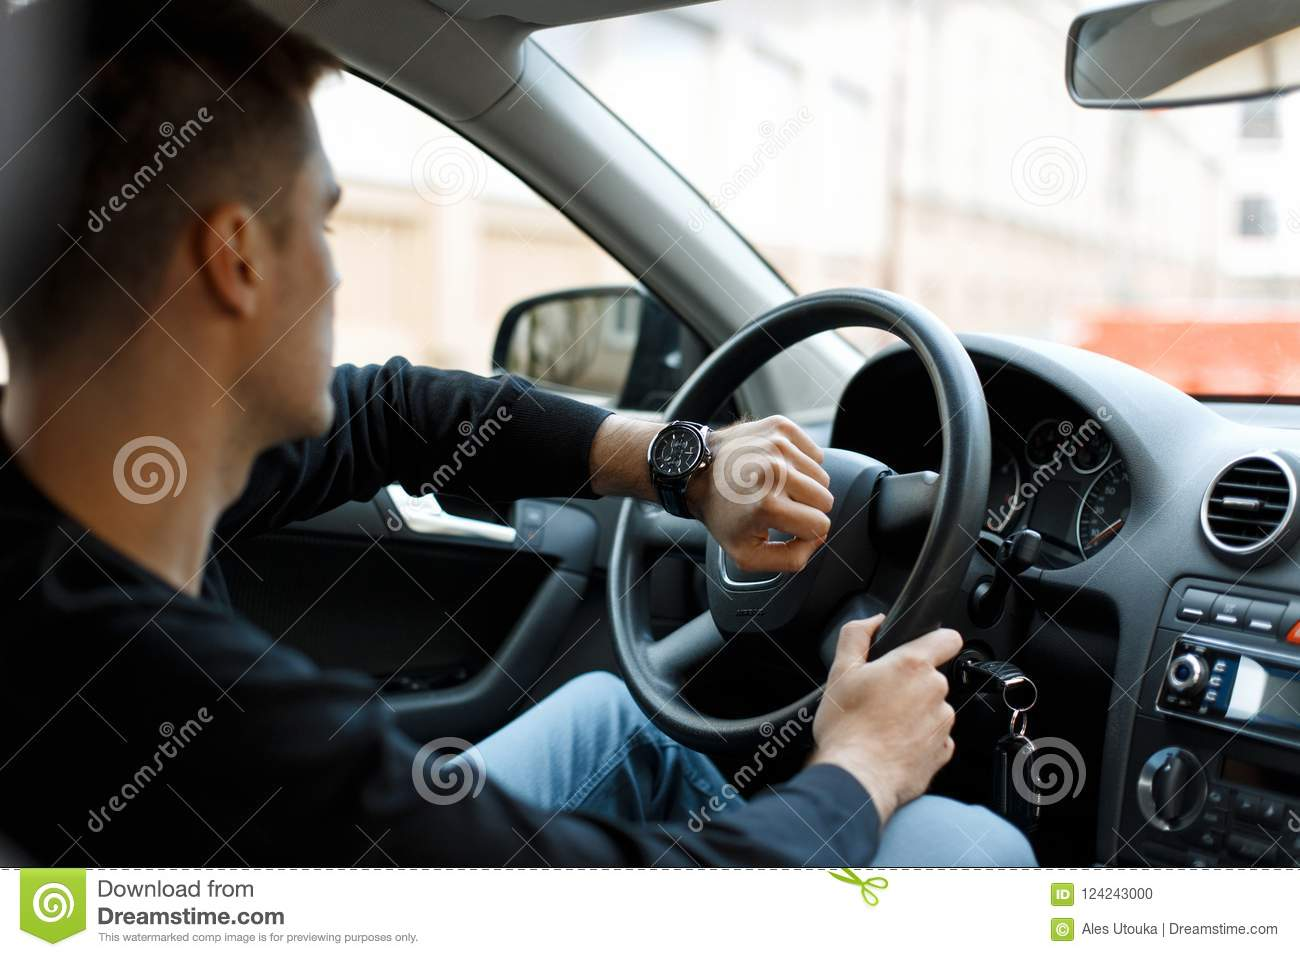 Male driver sitting in car in traffic jam and looking at clock.